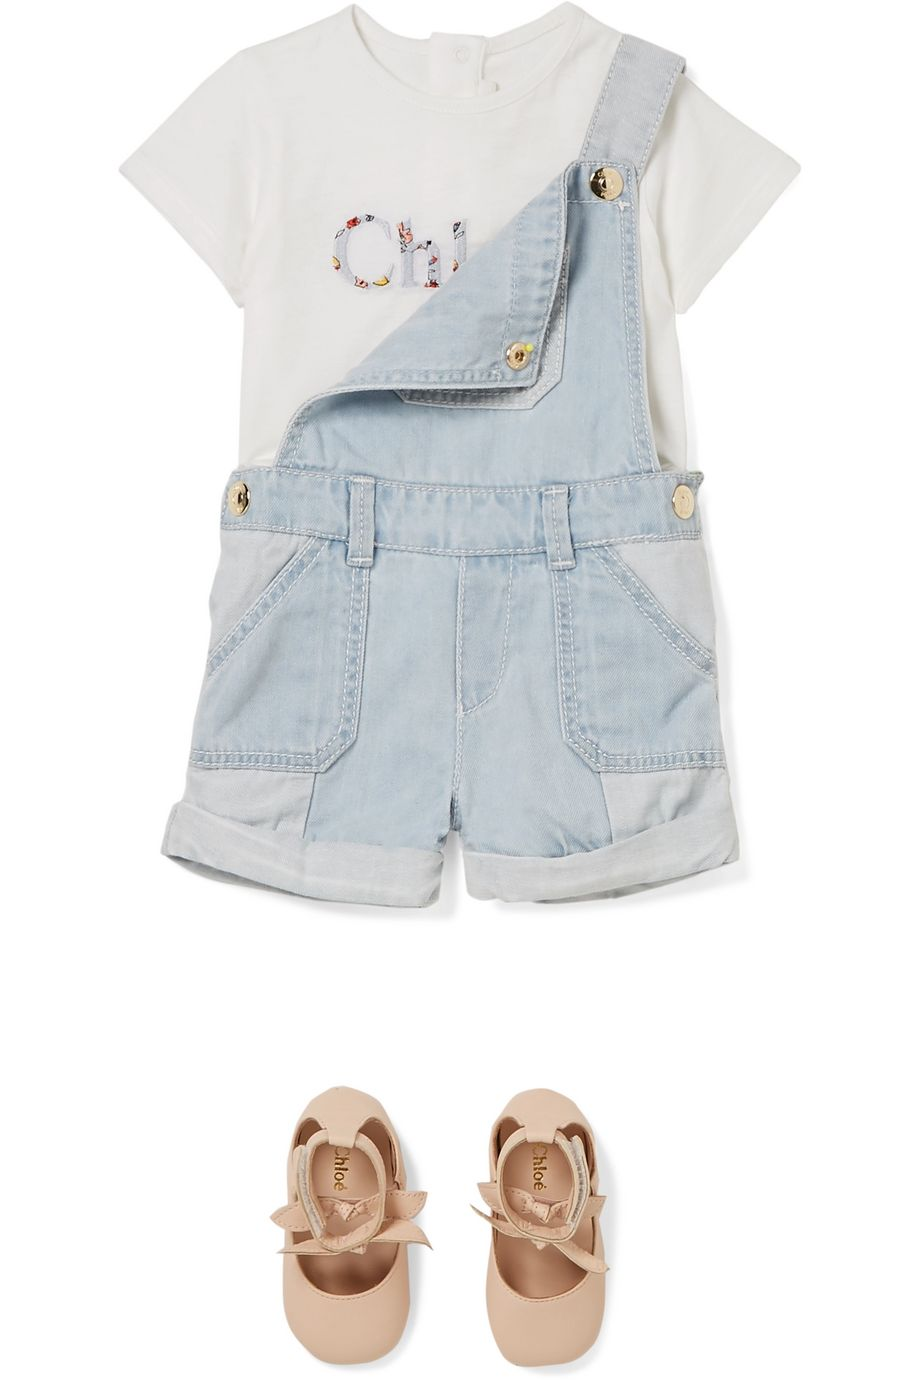 Chloé Kids Months 6 - 18 printed cotton and modal-blend T-shirt